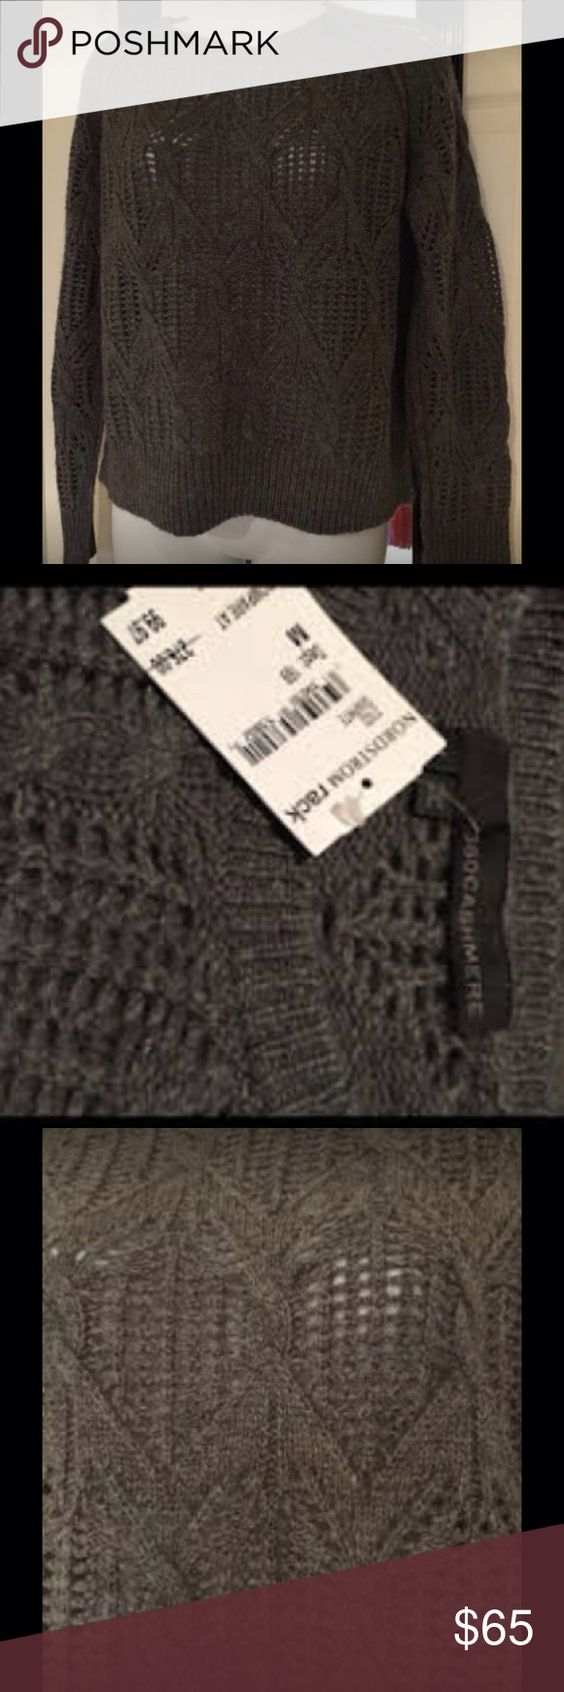 Nwt 100% cashmere thick lacy sweater Super soft gray sweater 360 cashmere Sweaters Crew & Scoop Necks